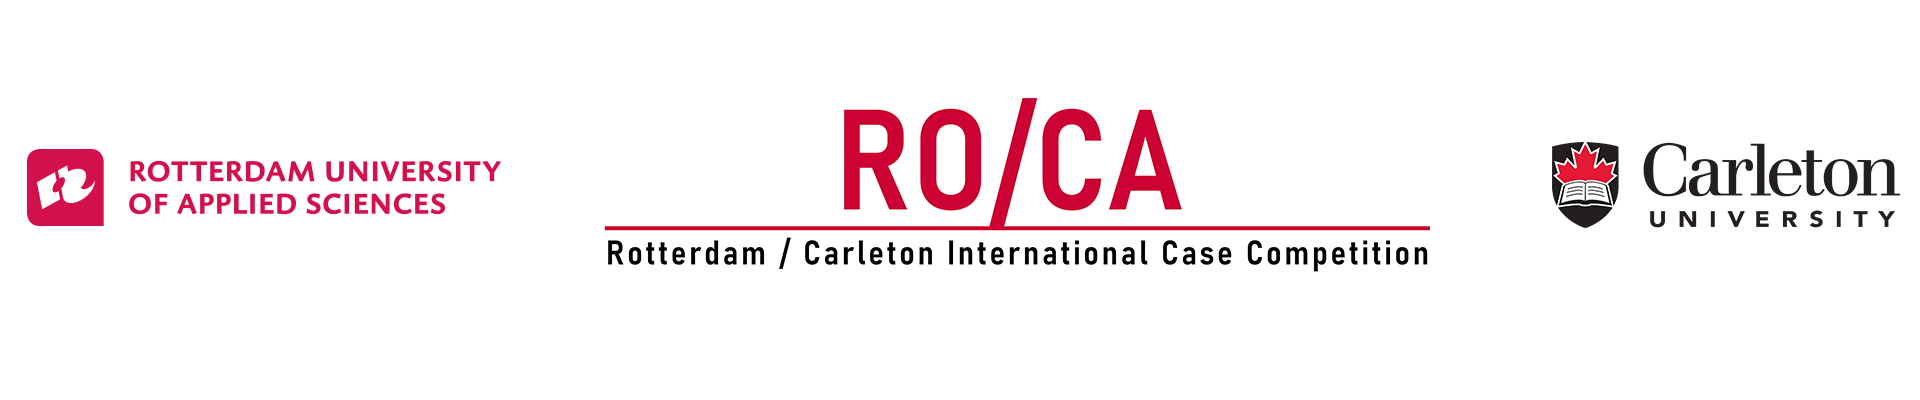 3. ROCA 2020 EVENTS  ROTTERDAM – CARLETON INTERNATIONAL CASE COMPETITION  (Kopie)